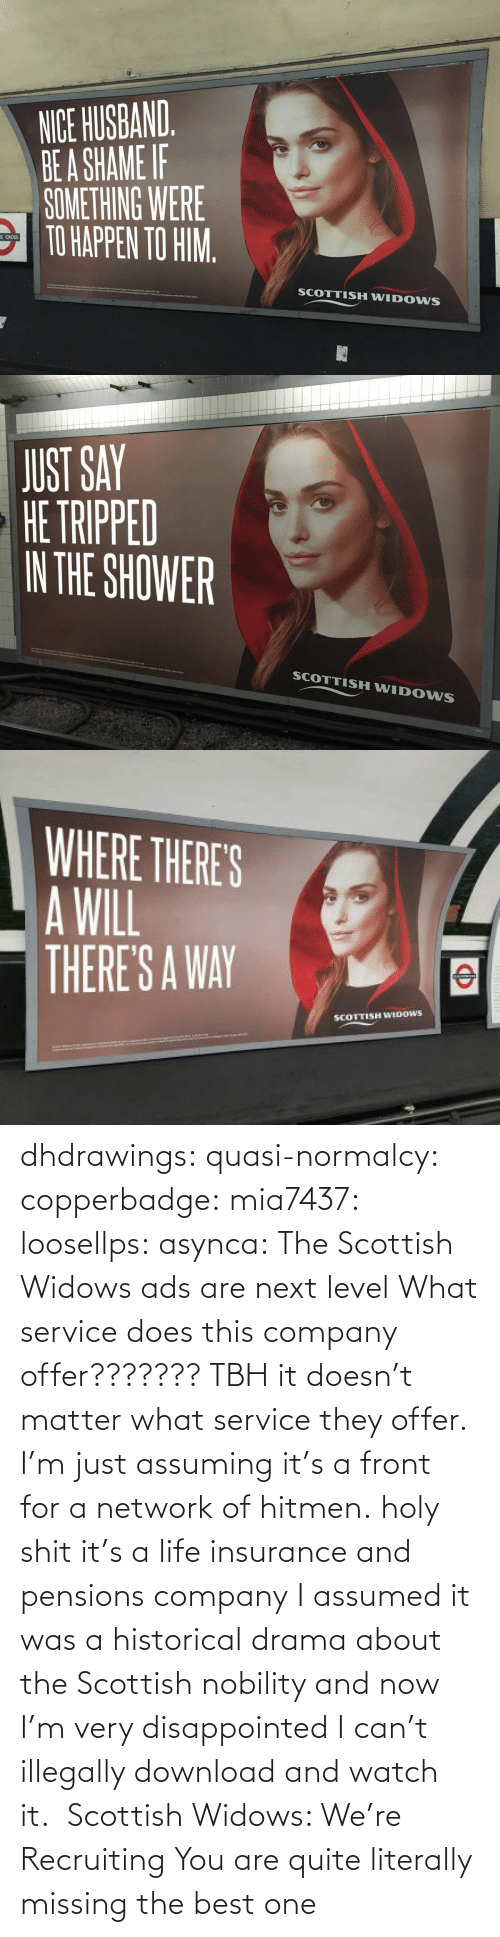 tbh: dhdrawings:  quasi-normalcy:  copperbadge:  mia7437:  loosellps:  asynca: The Scottish Widows ads are next level What service does this company offer??????? TBH it doesn't matter what service they offer. I'm just assuming it's a front for a network of hitmen.  holy shit it's a life insurance and pensions company  I assumed it was a historical drama about the Scottish nobility and now I'm very disappointed I can't illegally download and watch it.     Scottish Widows: We're Recruiting    You are quite literally missing the best one